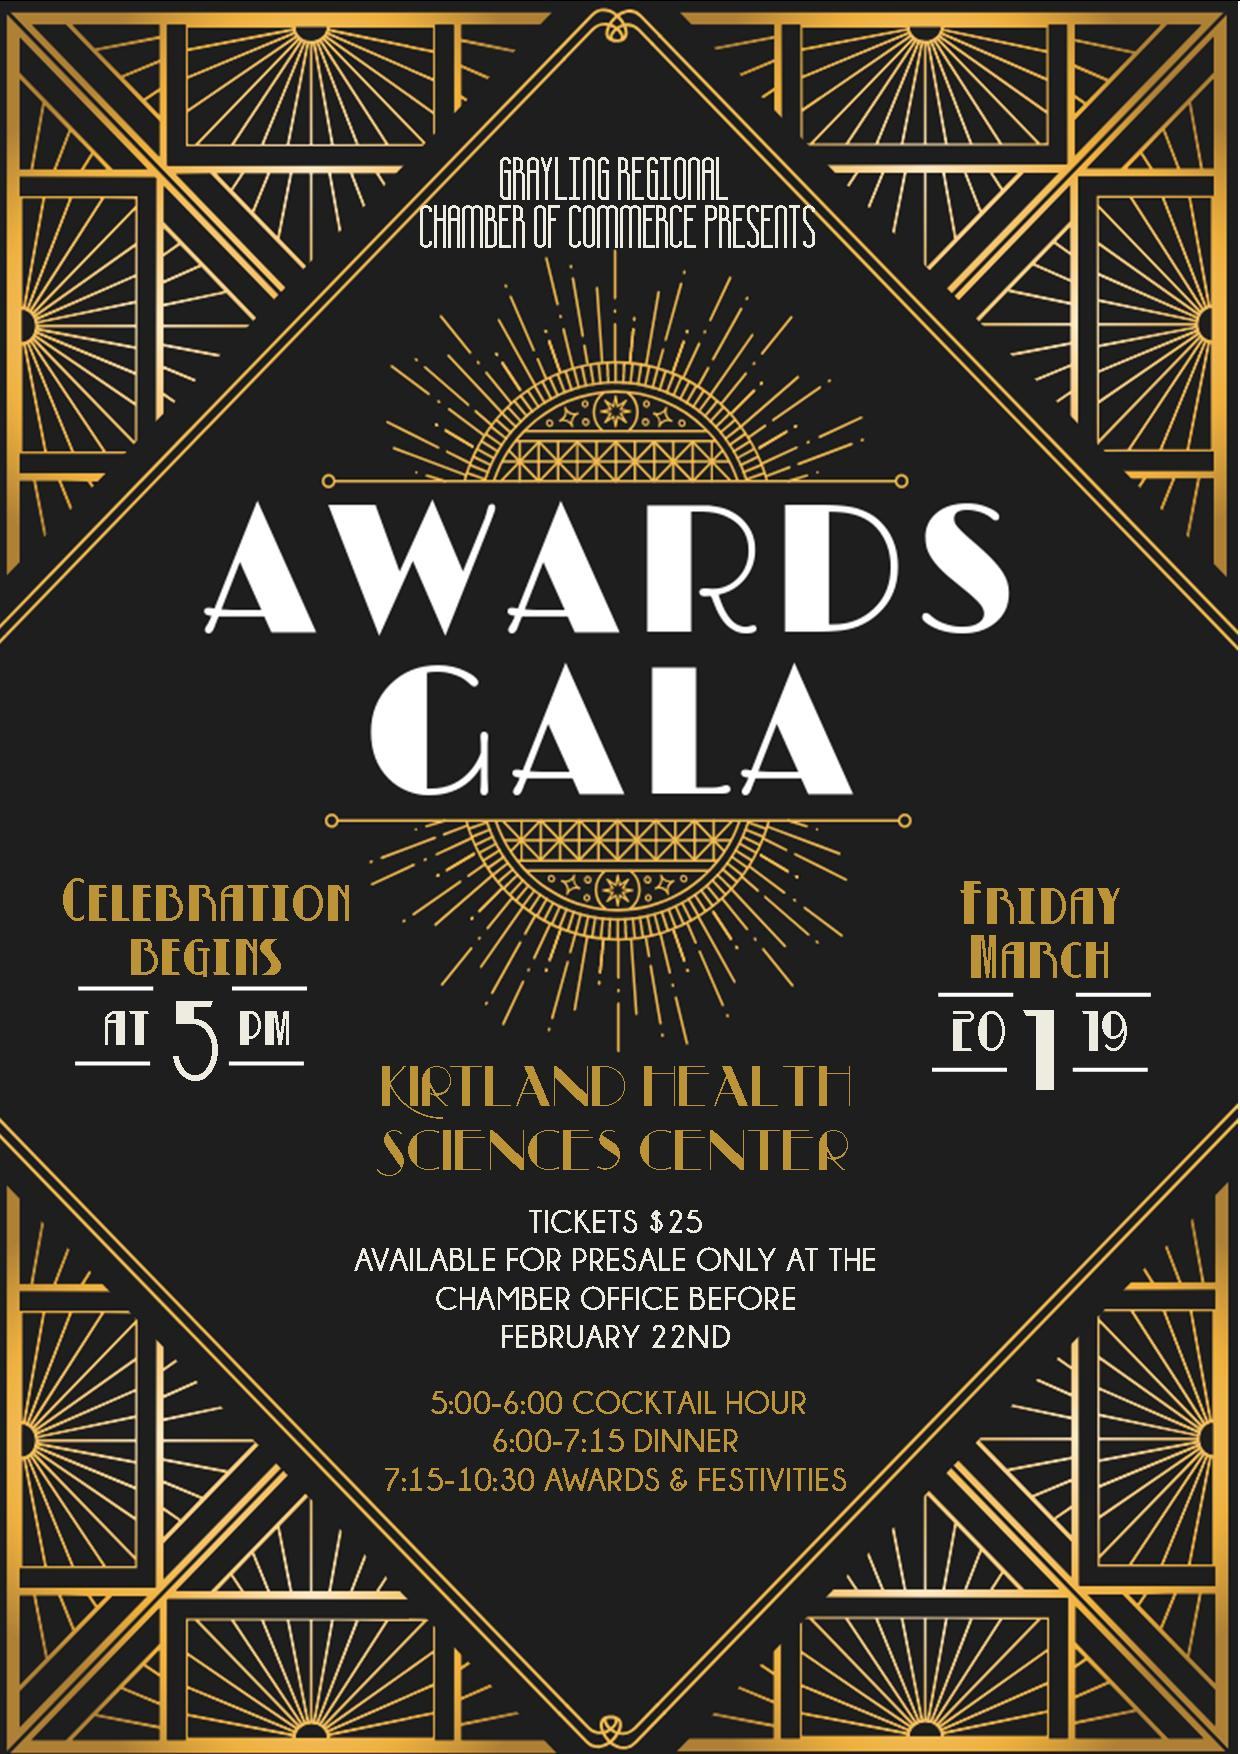 BUY YOUR TICKETS NOW FOR THIS GREAT-GATSBY THEMED AFFAIR!